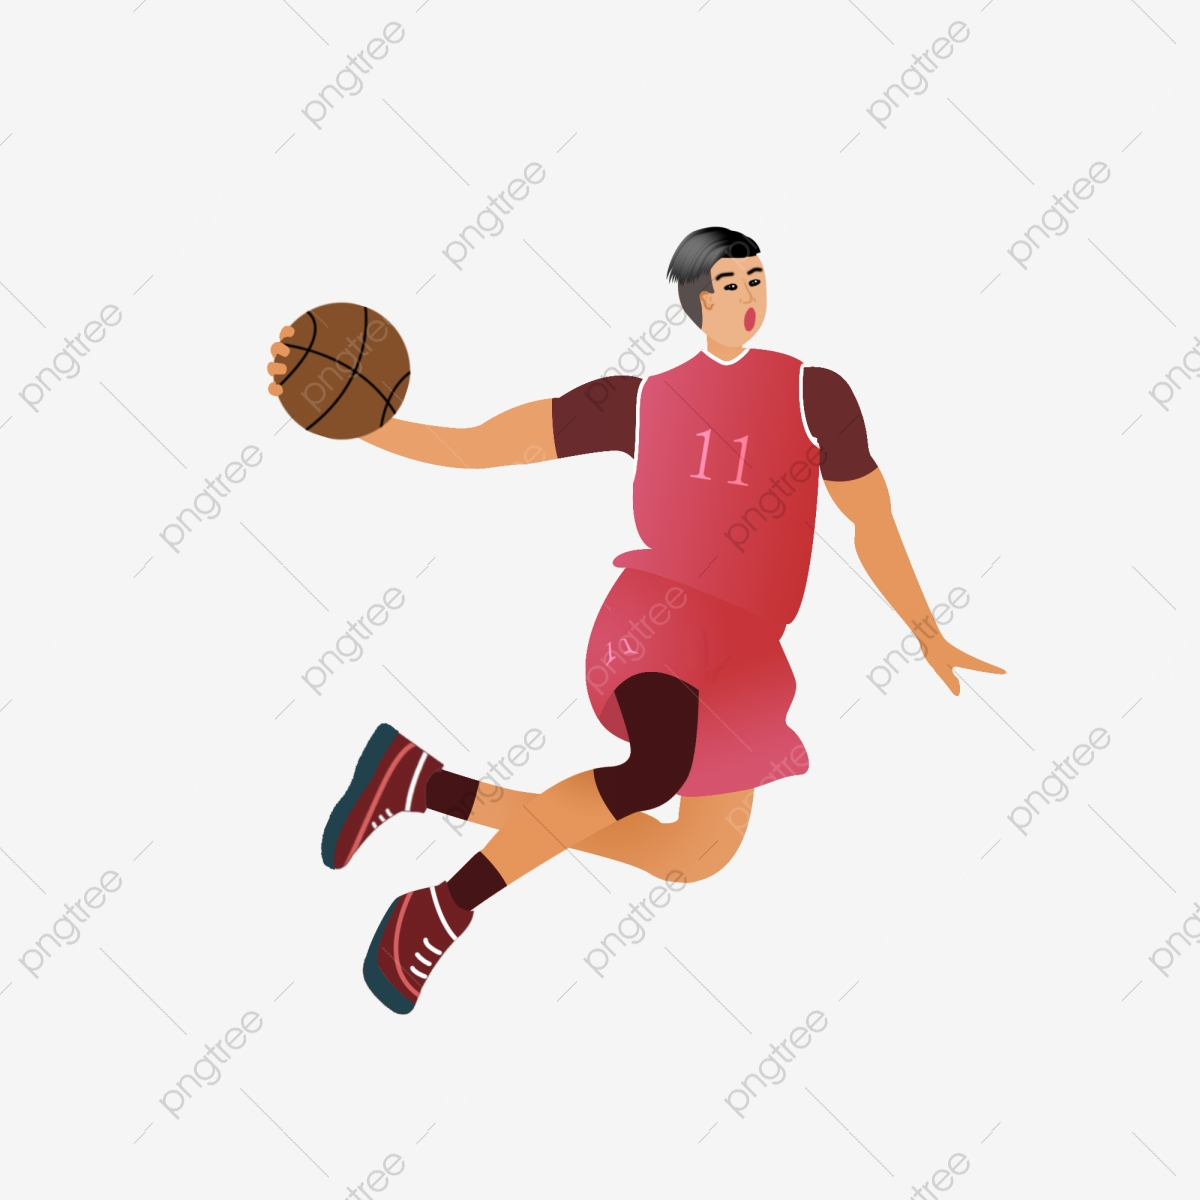 Player high definition deduction. Clipart basketball character